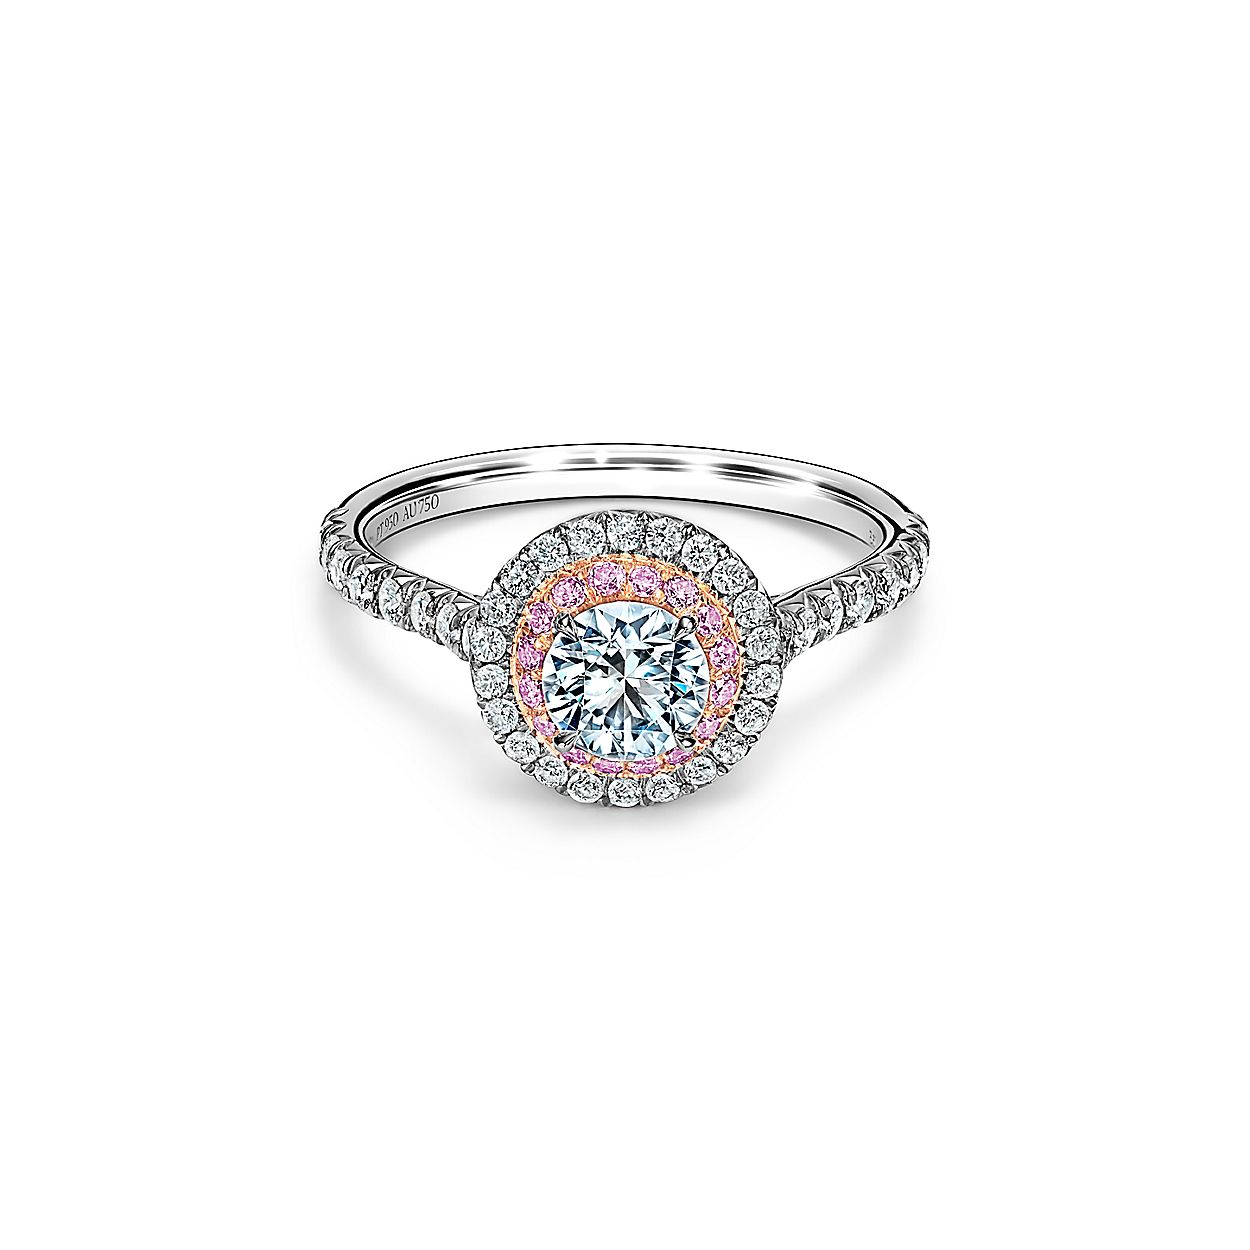 61cd166e5 Tiffany Soleste® Round Brilliant Double Halo Engagement Ring with Pink  Diamonds in Platinum